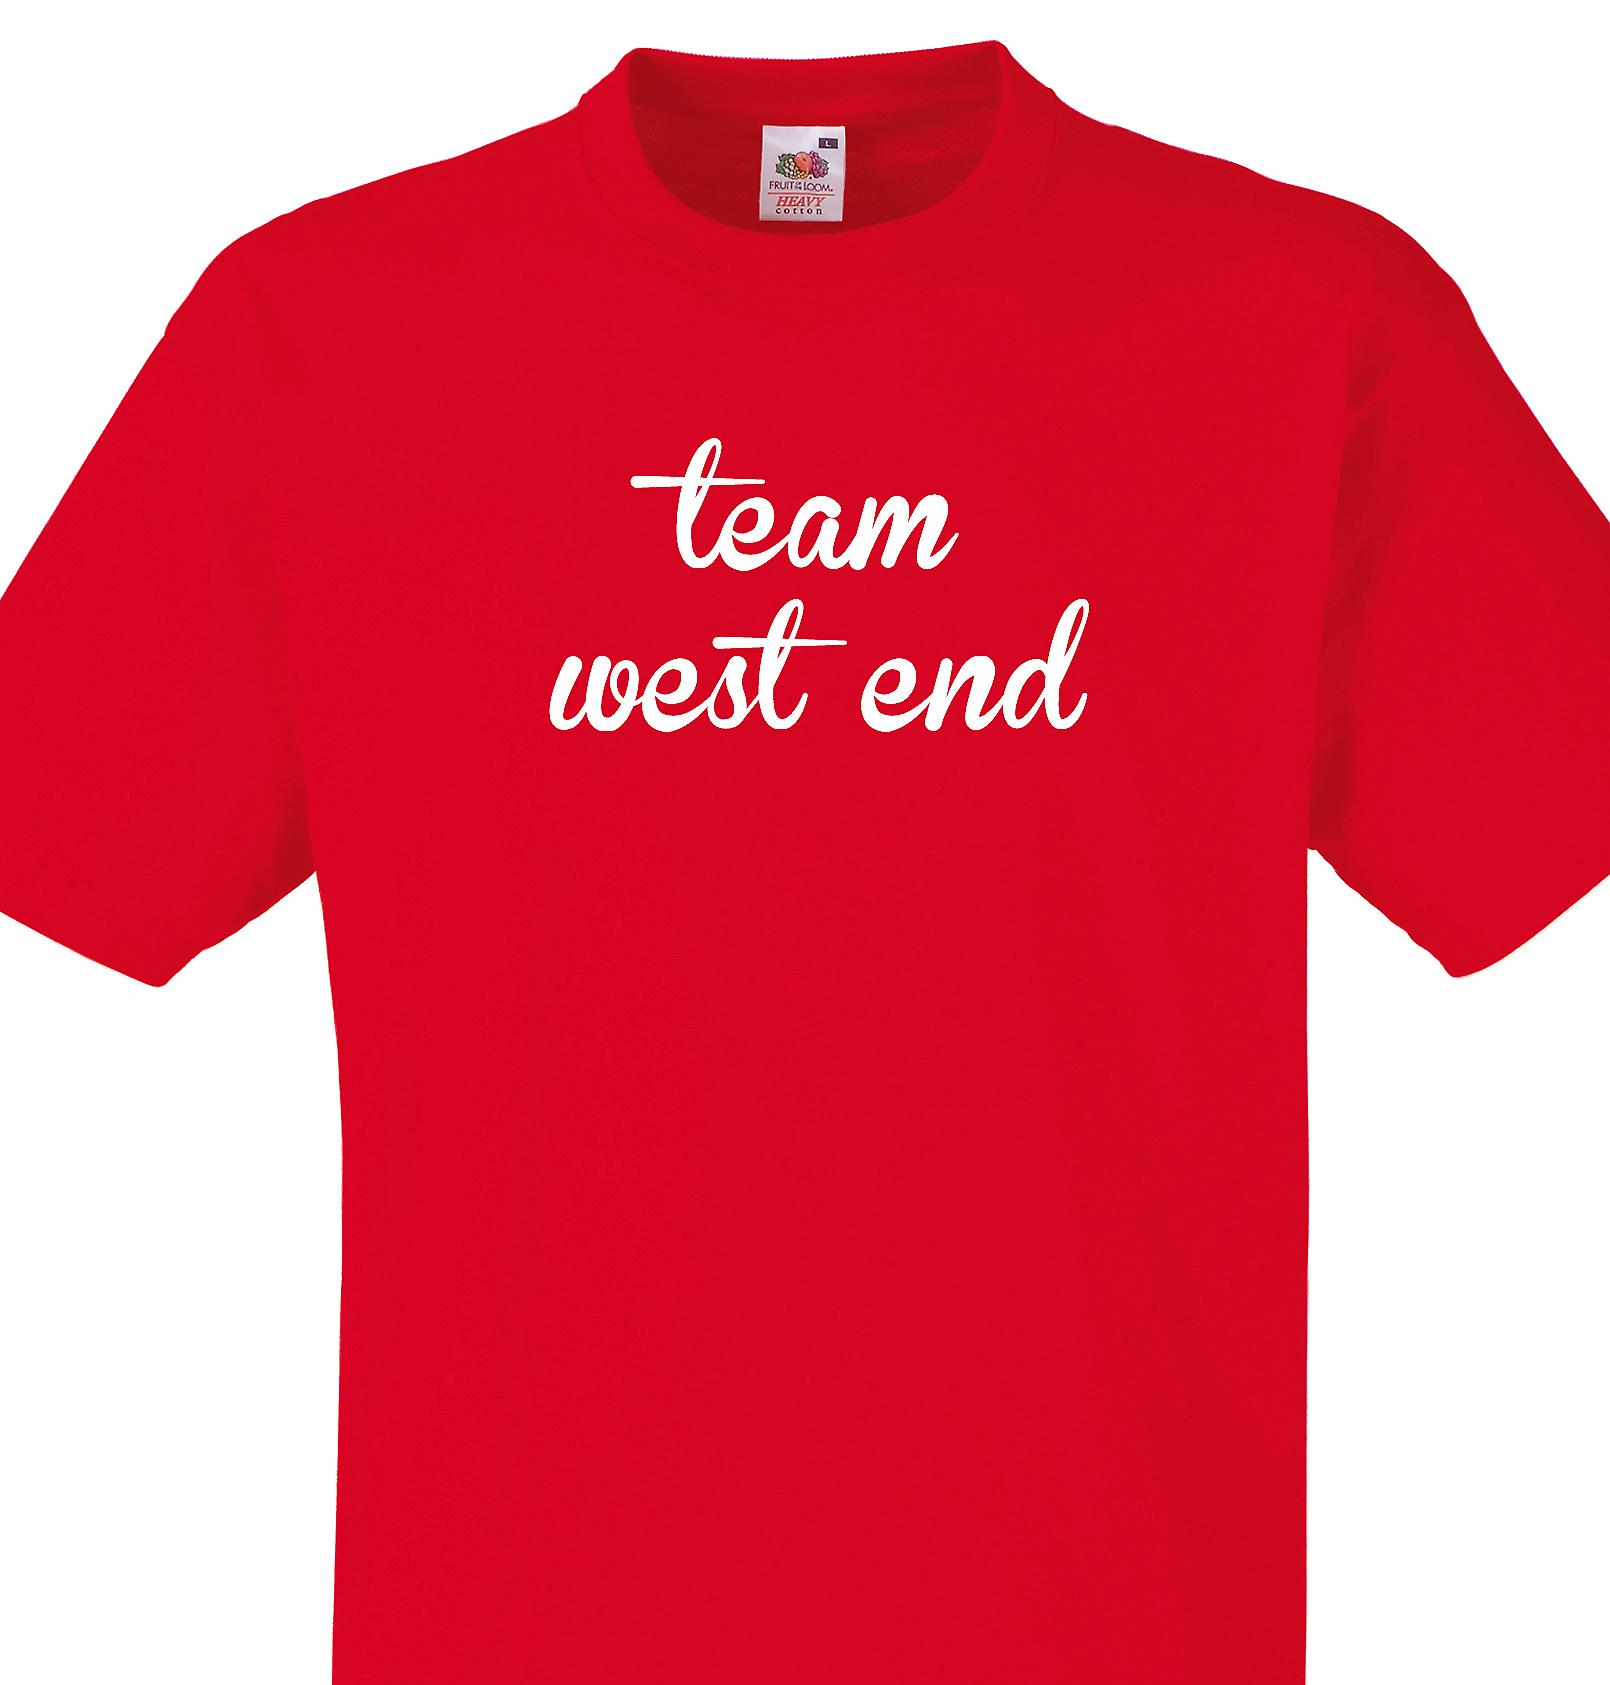 Team West end Red T shirt